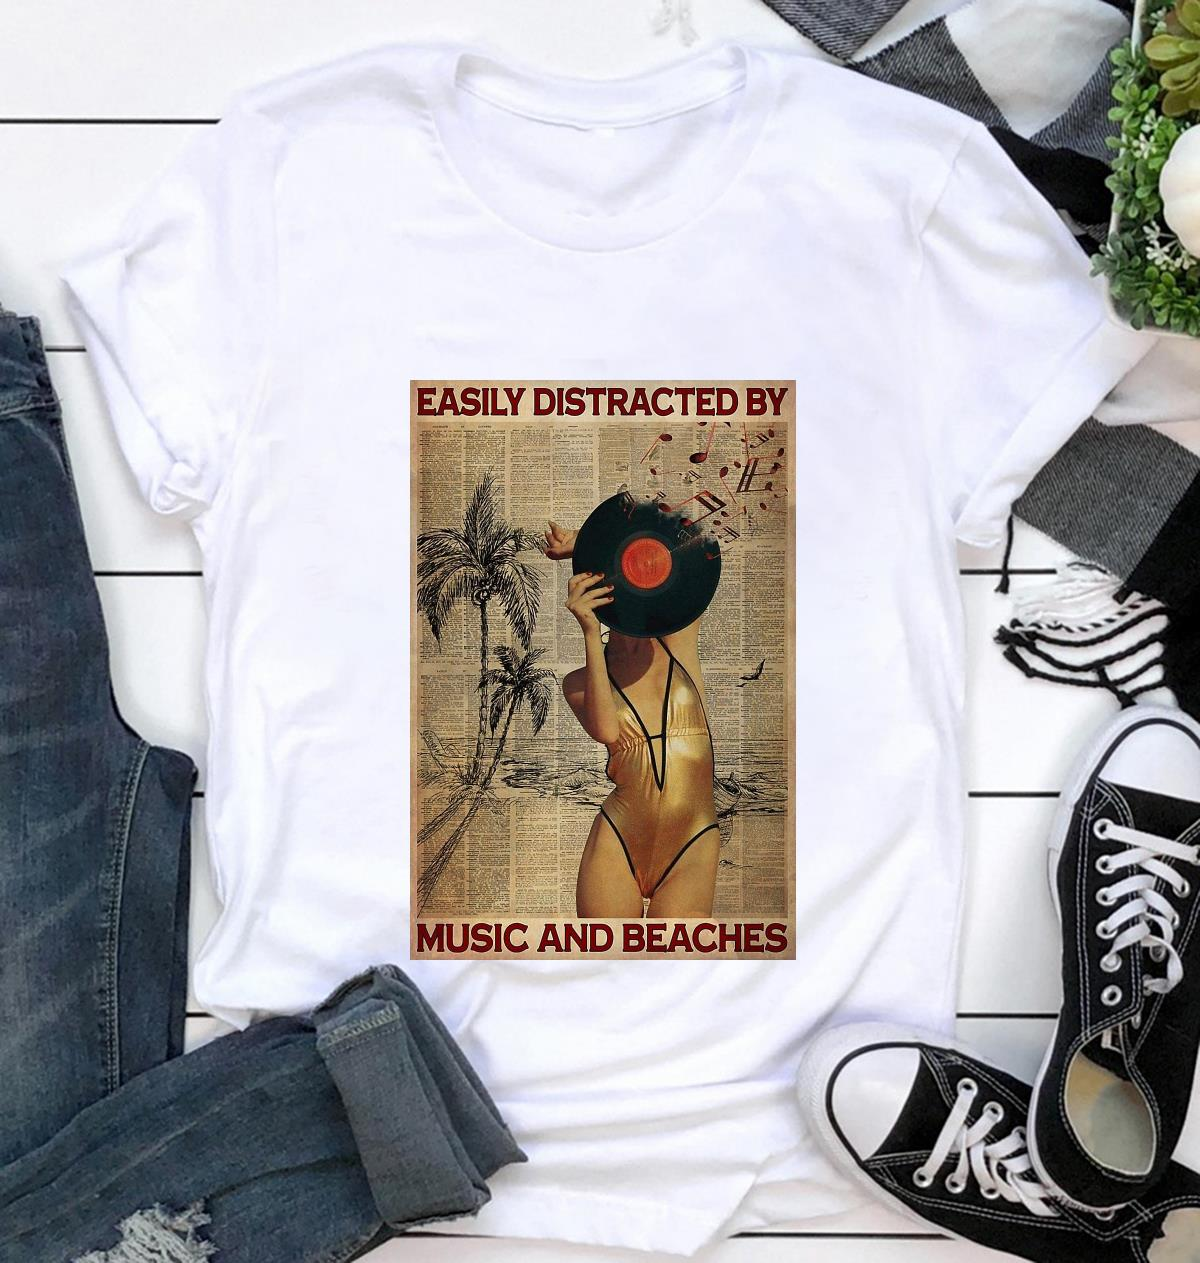 Easily distracted by music and beaches poster t-shirt